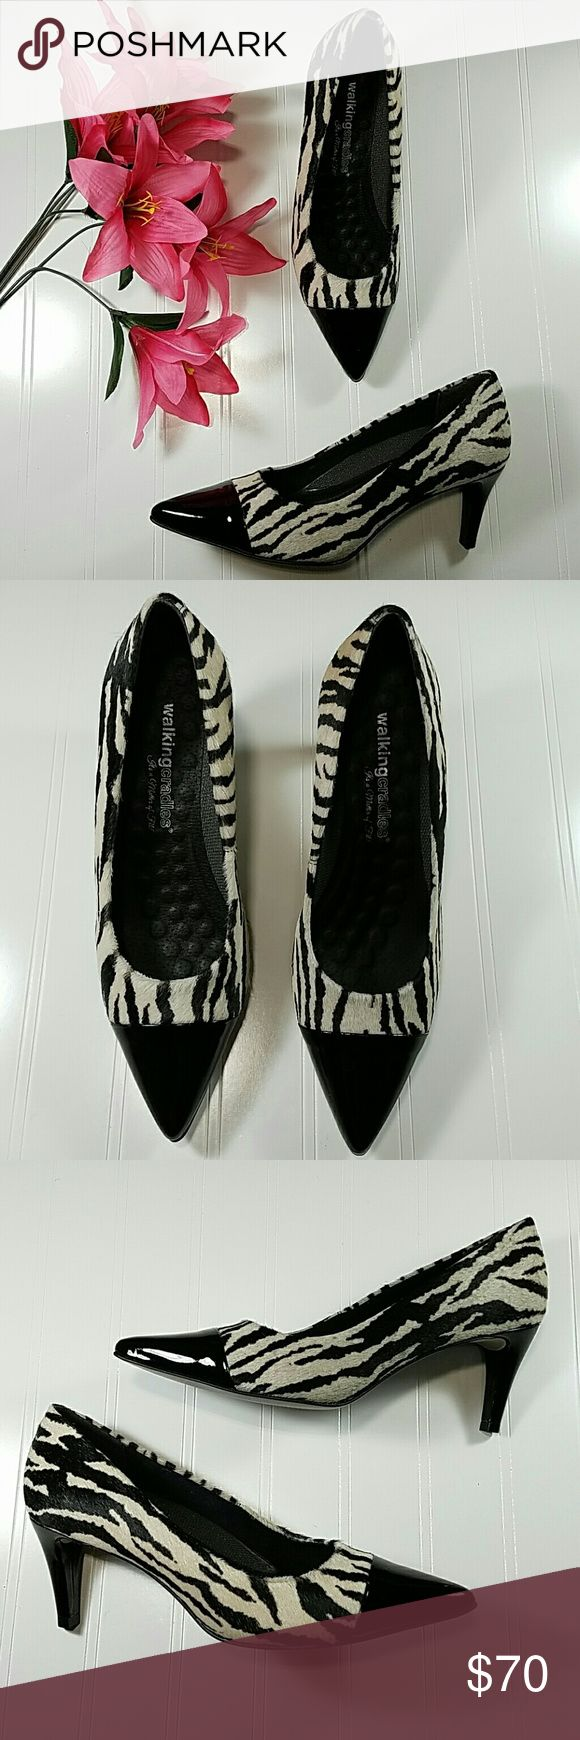 Walkingcradles zebra heels Zebra print heels with pointed toe. Black and cream color.Toe and heel are black. Zebra print has a further look and feel. 2 1/2 in heel.  NWT. Sz 8M Walkingcradles  Shoes Heels